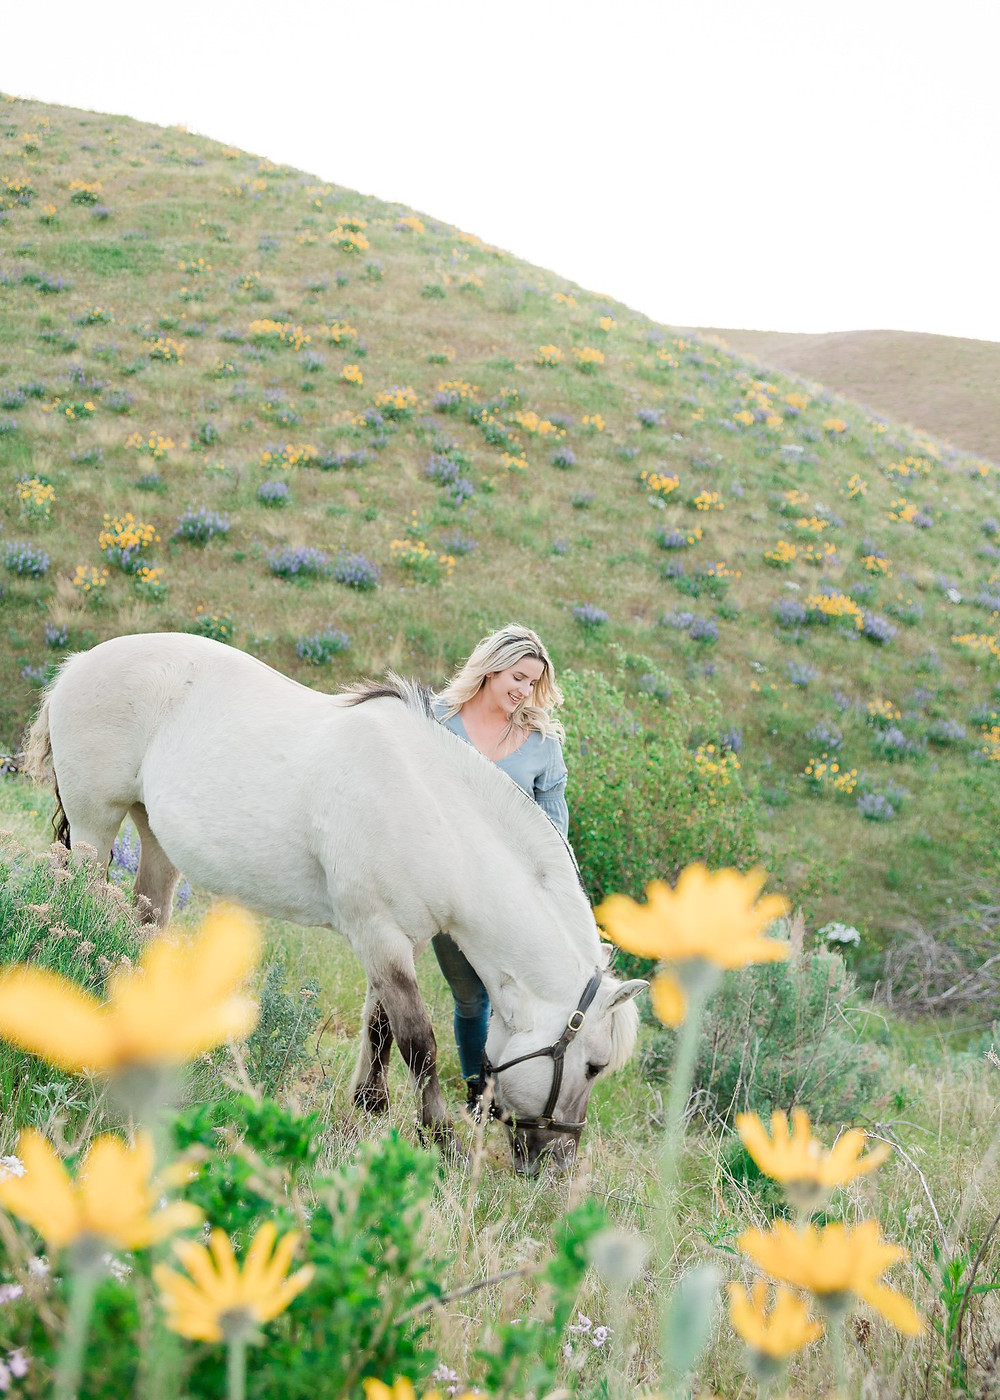 Ashley standing next to Solvi, her fjord mare, while she grazing in the green grass & wildflowers